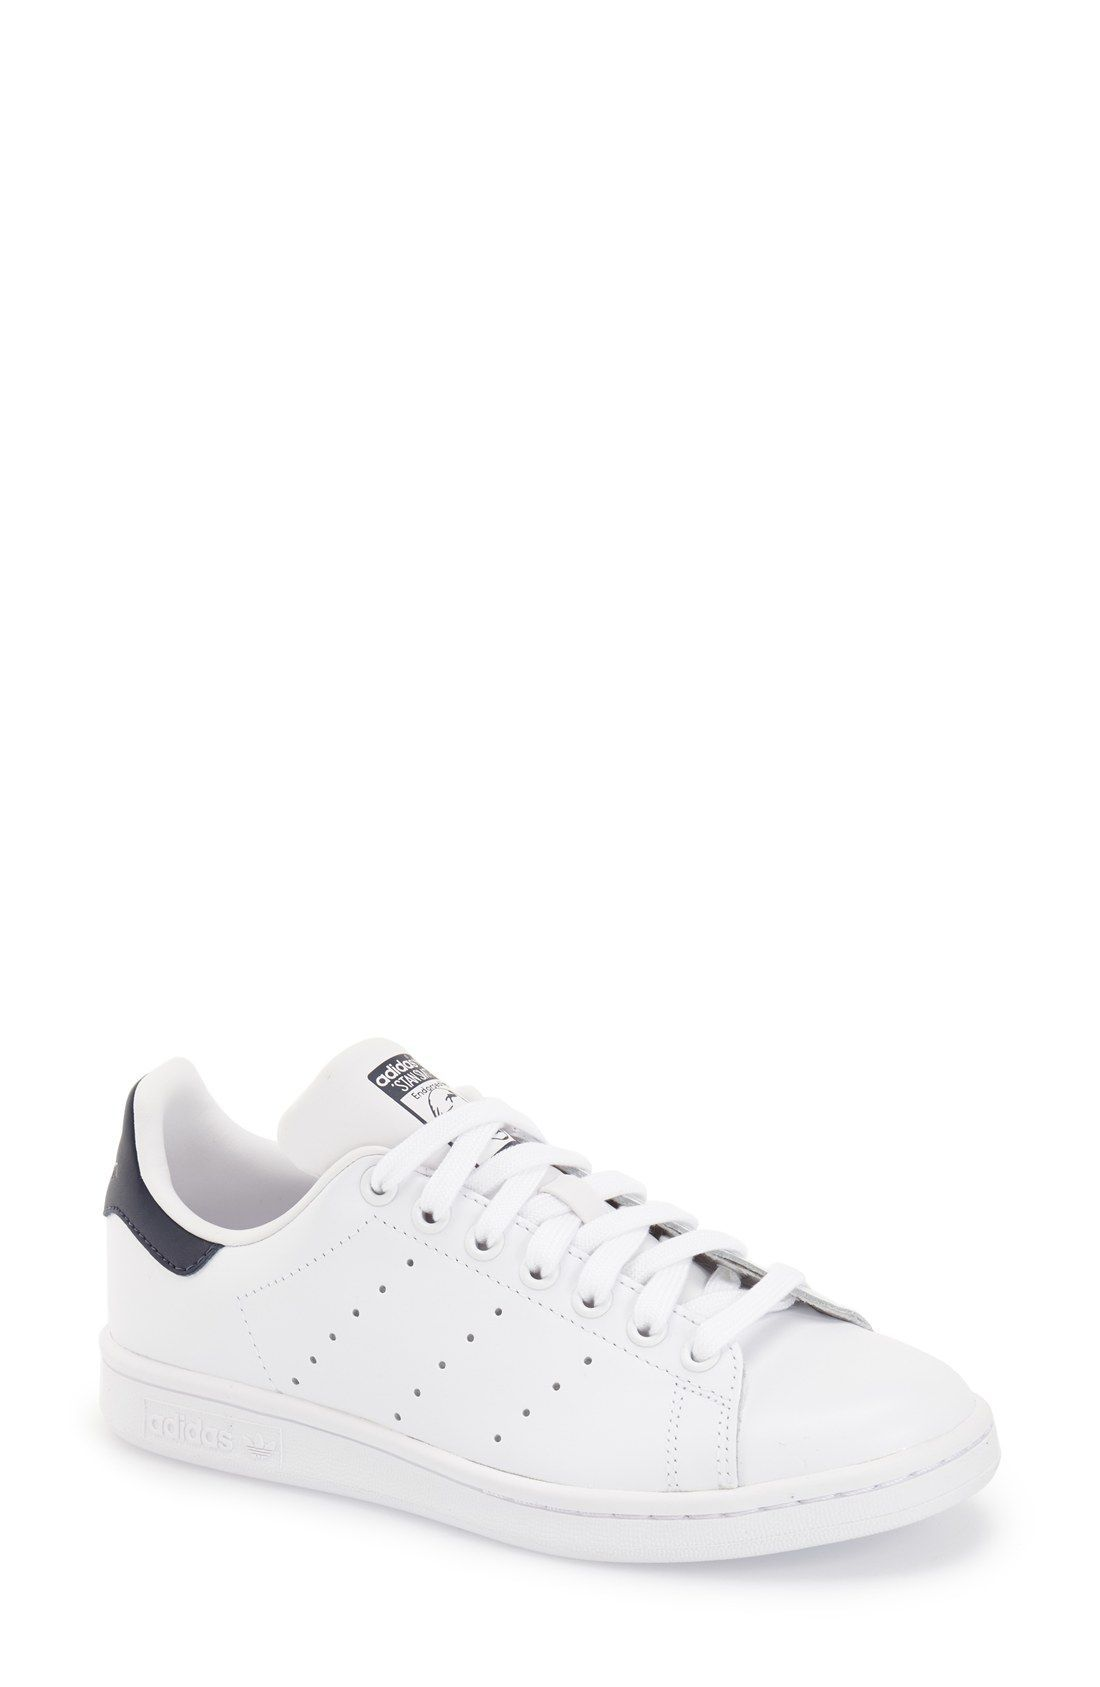 8ad25825e26 Free shipping and returns on adidas  Stan Smith  Sneaker (Women) at  Nordstrom